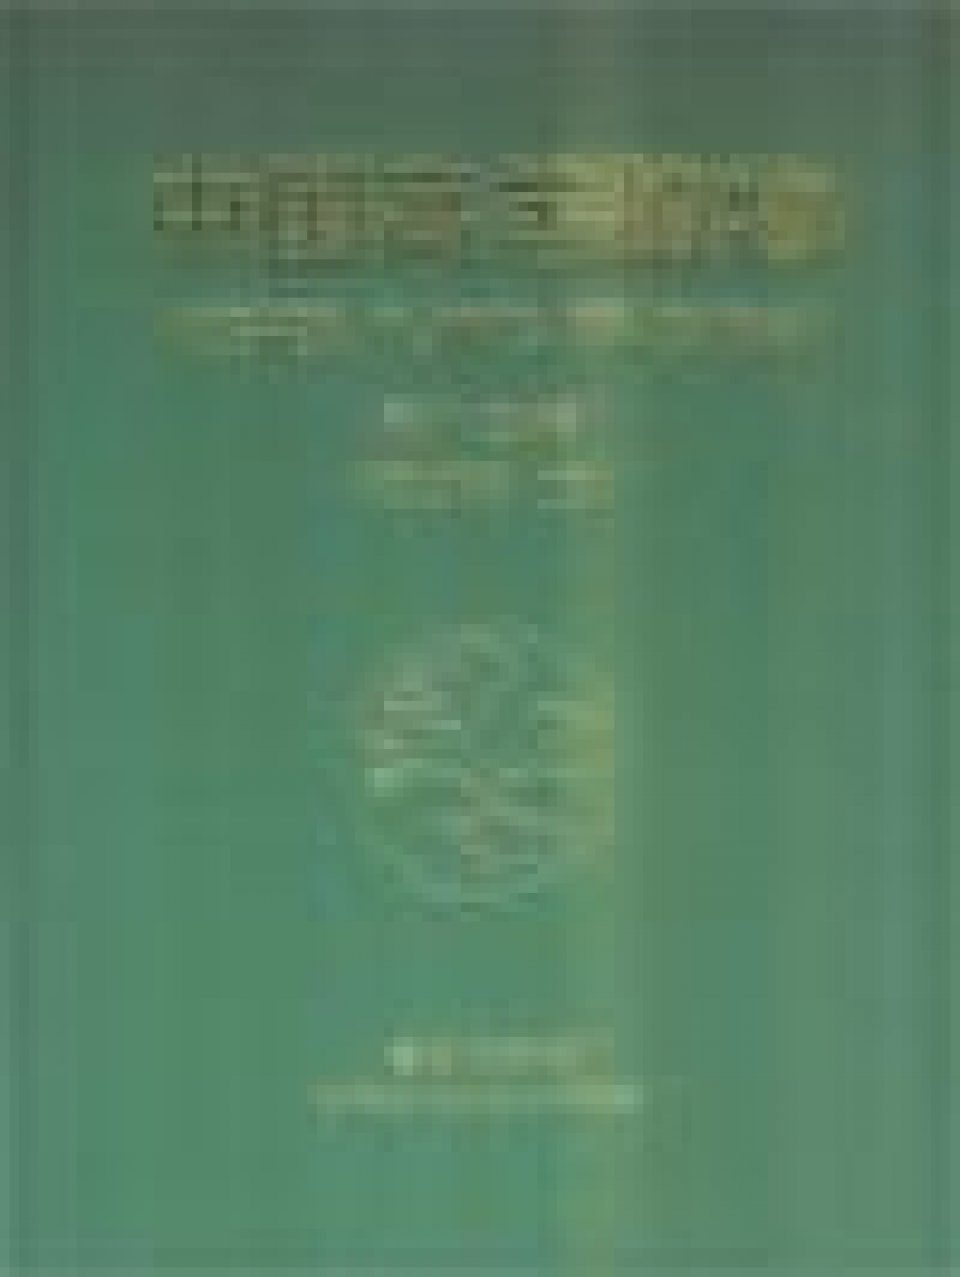 Higher Plants of China: Volume 13 - Sparganiaceae [Chinese]